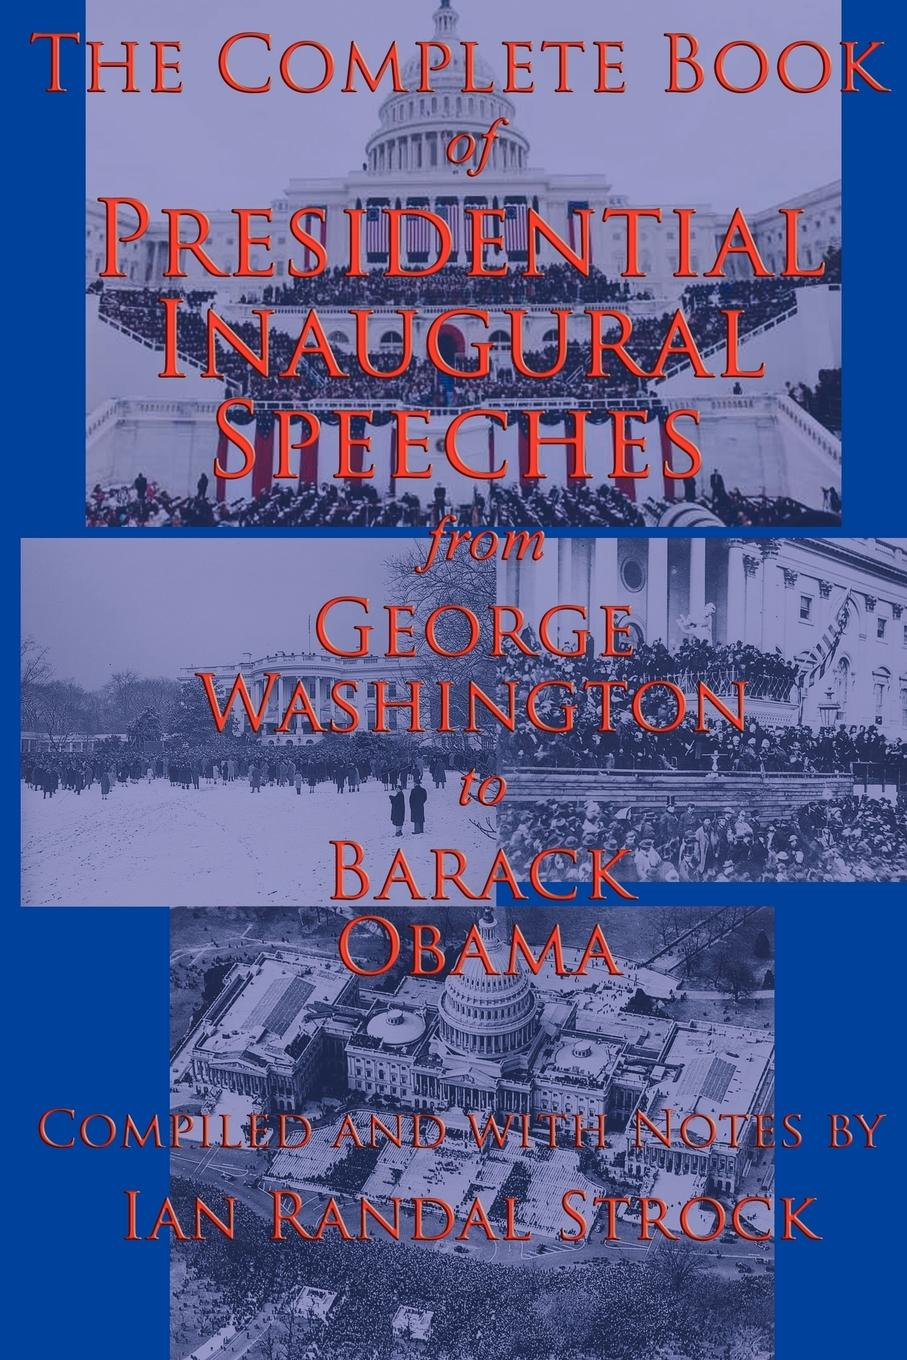 George Washington, Barack Obama The Complete Book of Presidential Inaugural Speeches. From George Washington to Barack Obama barack obama the wit and wisdom of barack obama a book of quotations